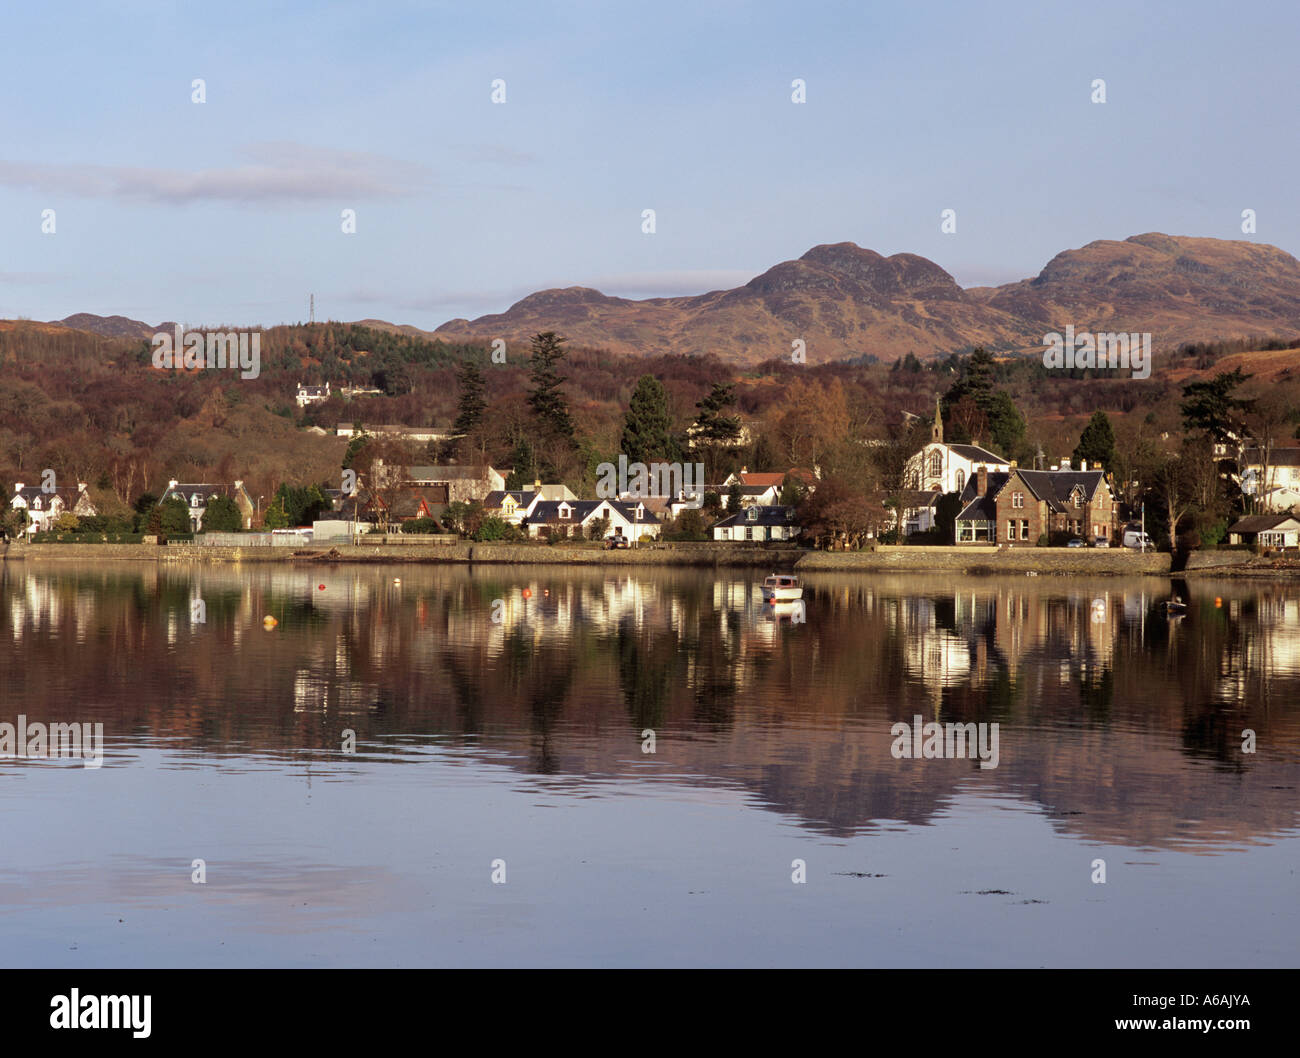 VILLAGE at head of tidal Gare Loch reflected in water  Garelochhead Argyll Bute Scotland UK - Stock Image